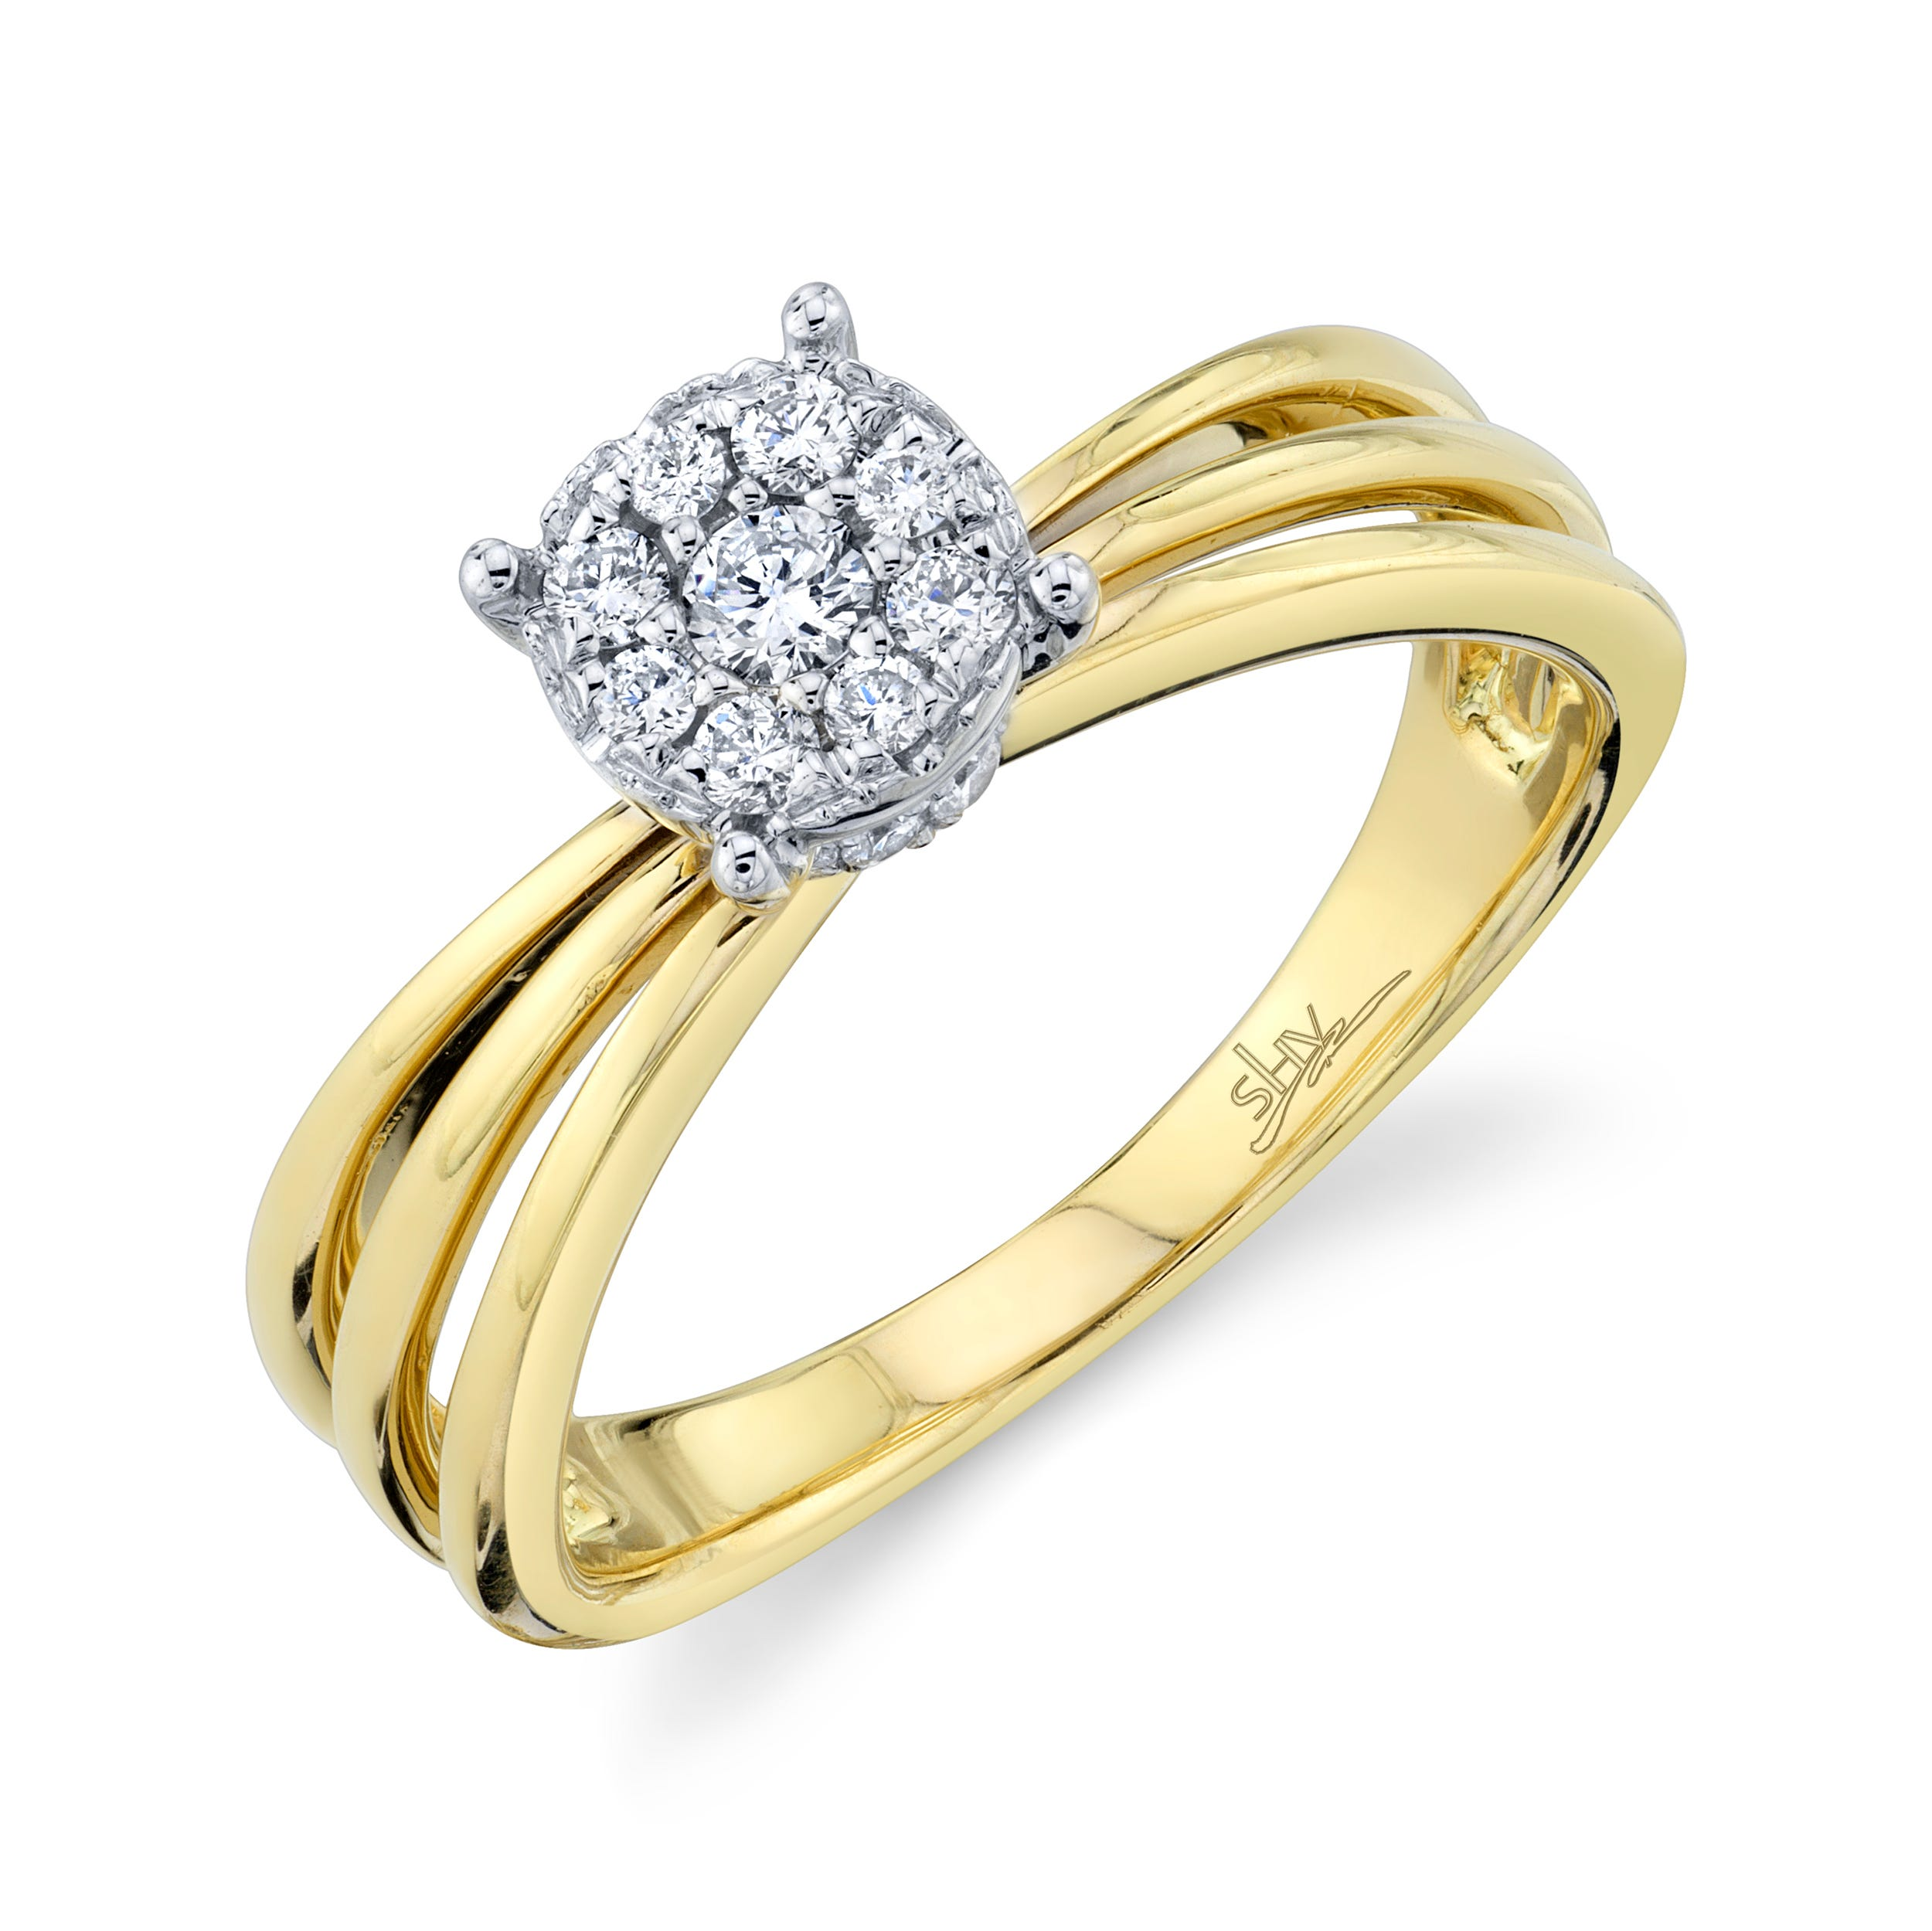 Shy Creation 1/4ctw. Diamond Composite Engagement Ring in 14k White & Yellow Gold SC22007050